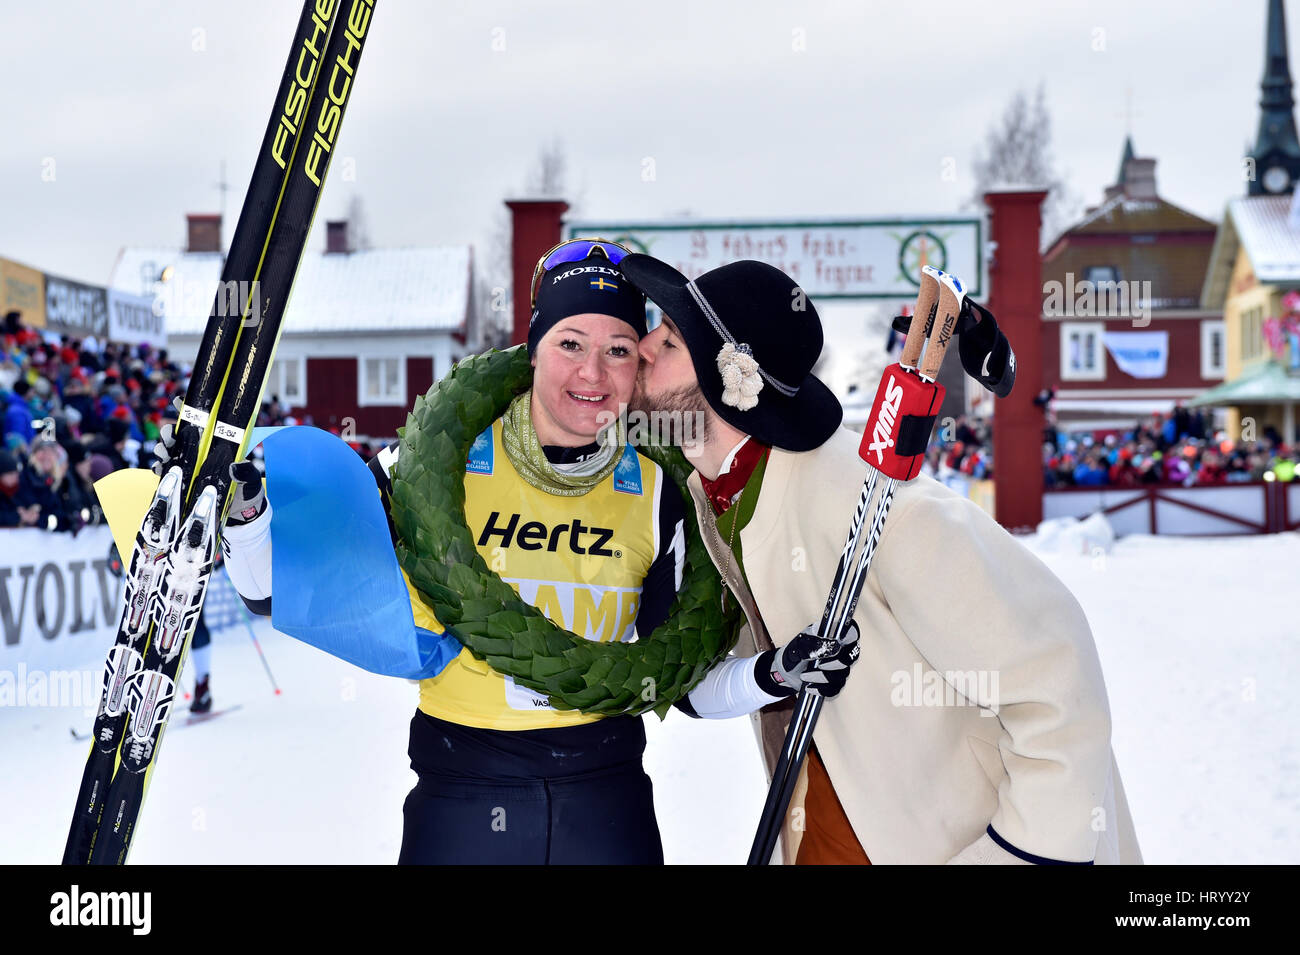 Stockholm. 5th Mar, 2017. Sweden's Britta Johansson Norgren (L) poses for photos after winning the women's - Stock Image